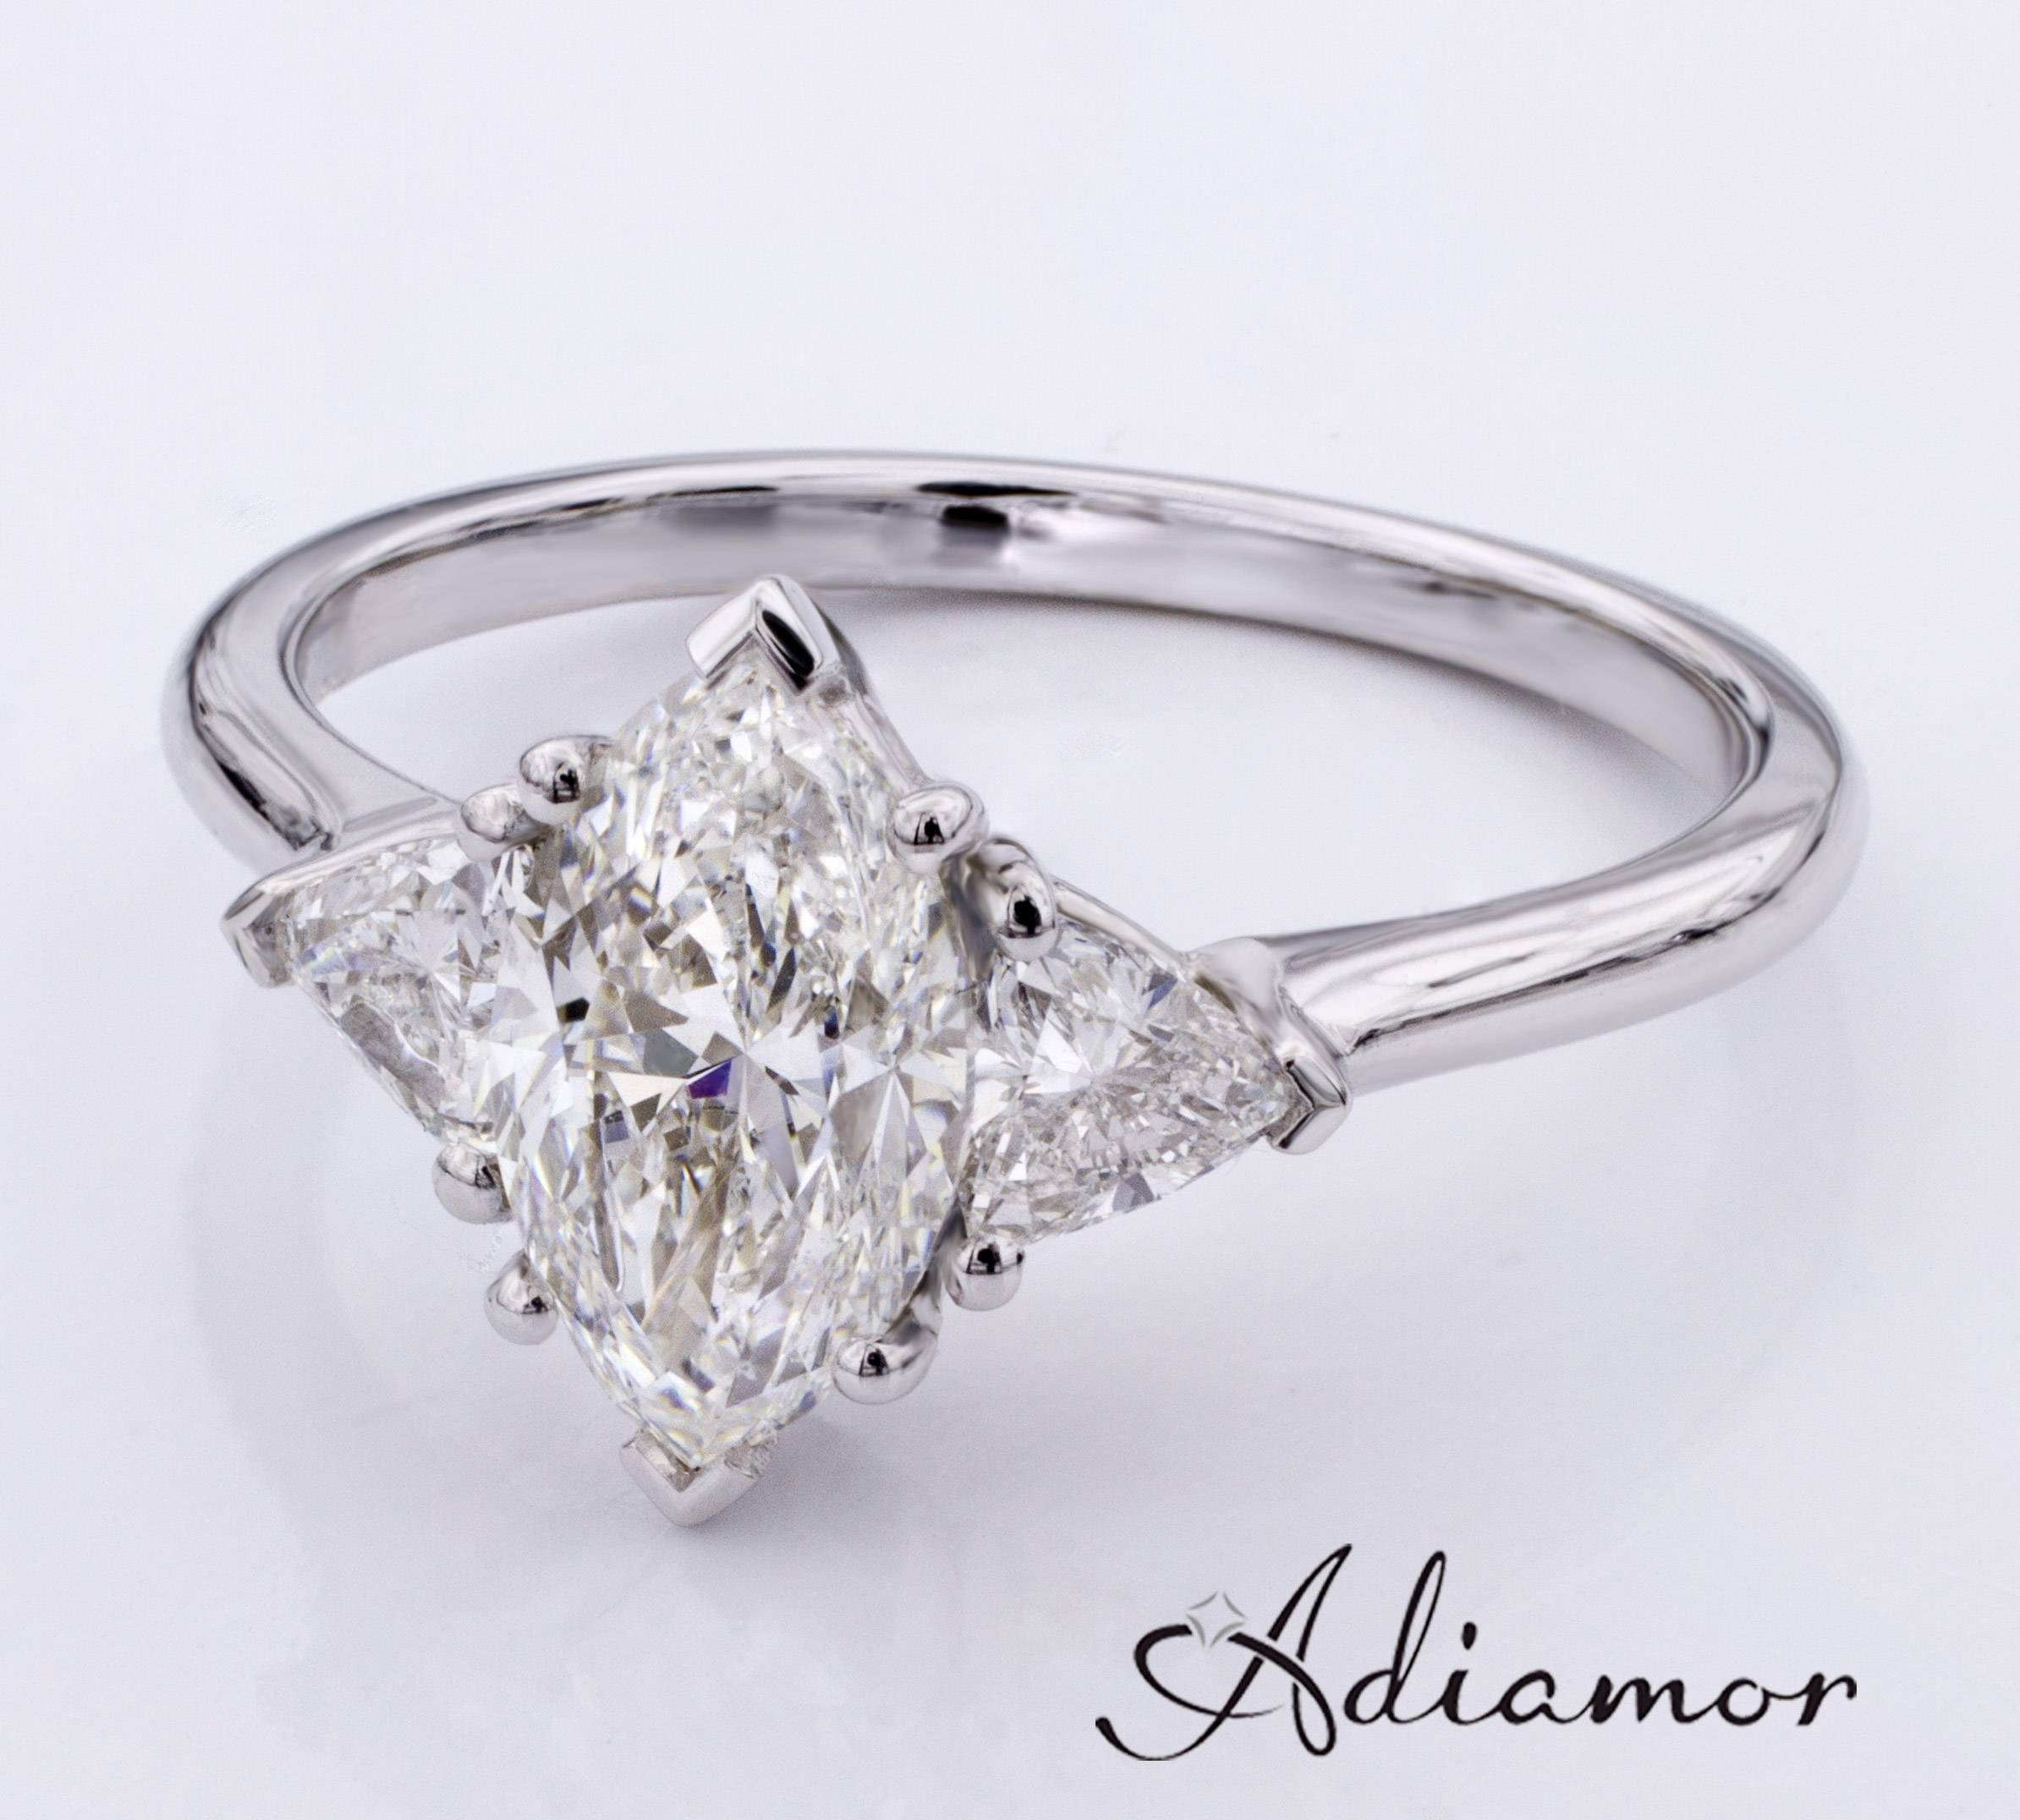 Modern Versions Of The Three Stone Ring | Adiamor Pertaining To Three Stone Engagement Rings With Side Stones (View 7 of 15)